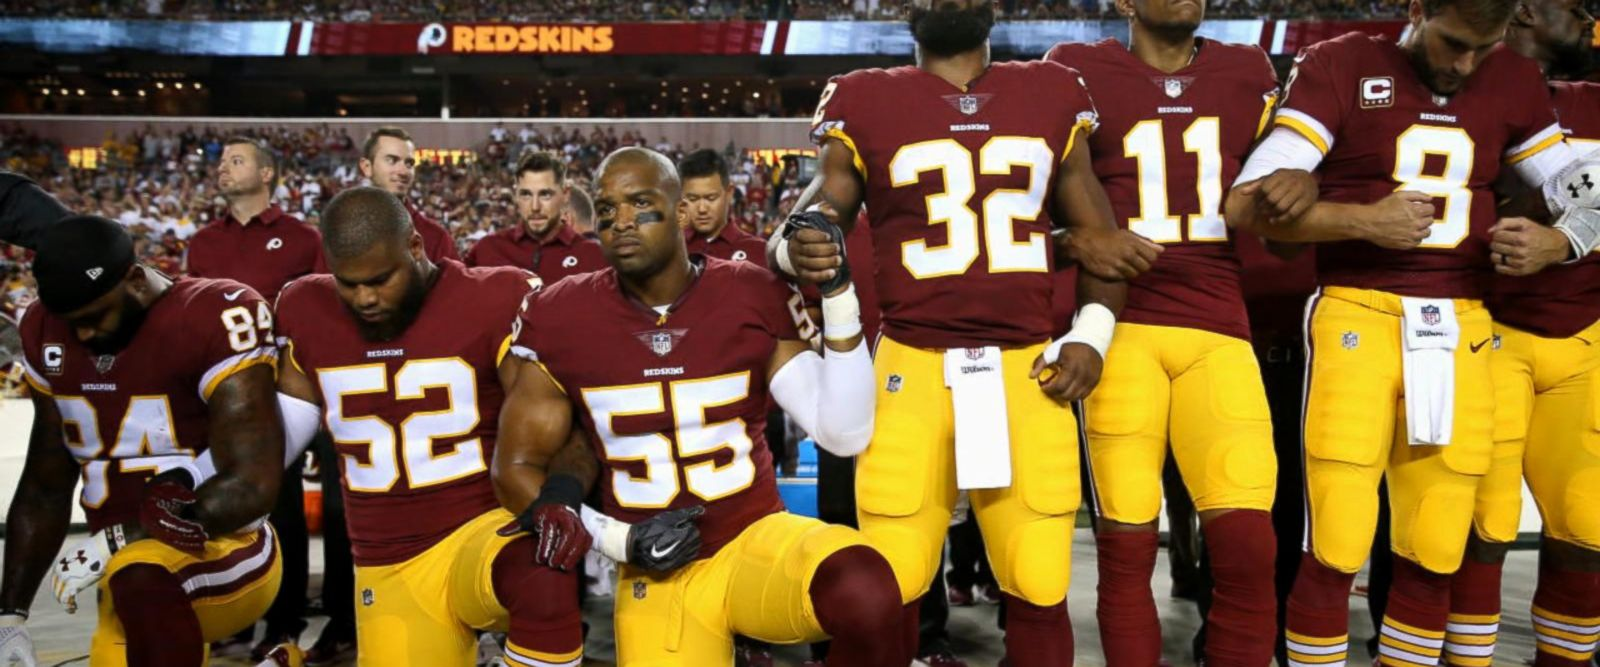 VIDEO: Athletes defend NFL protests amidst Trump's condemnations